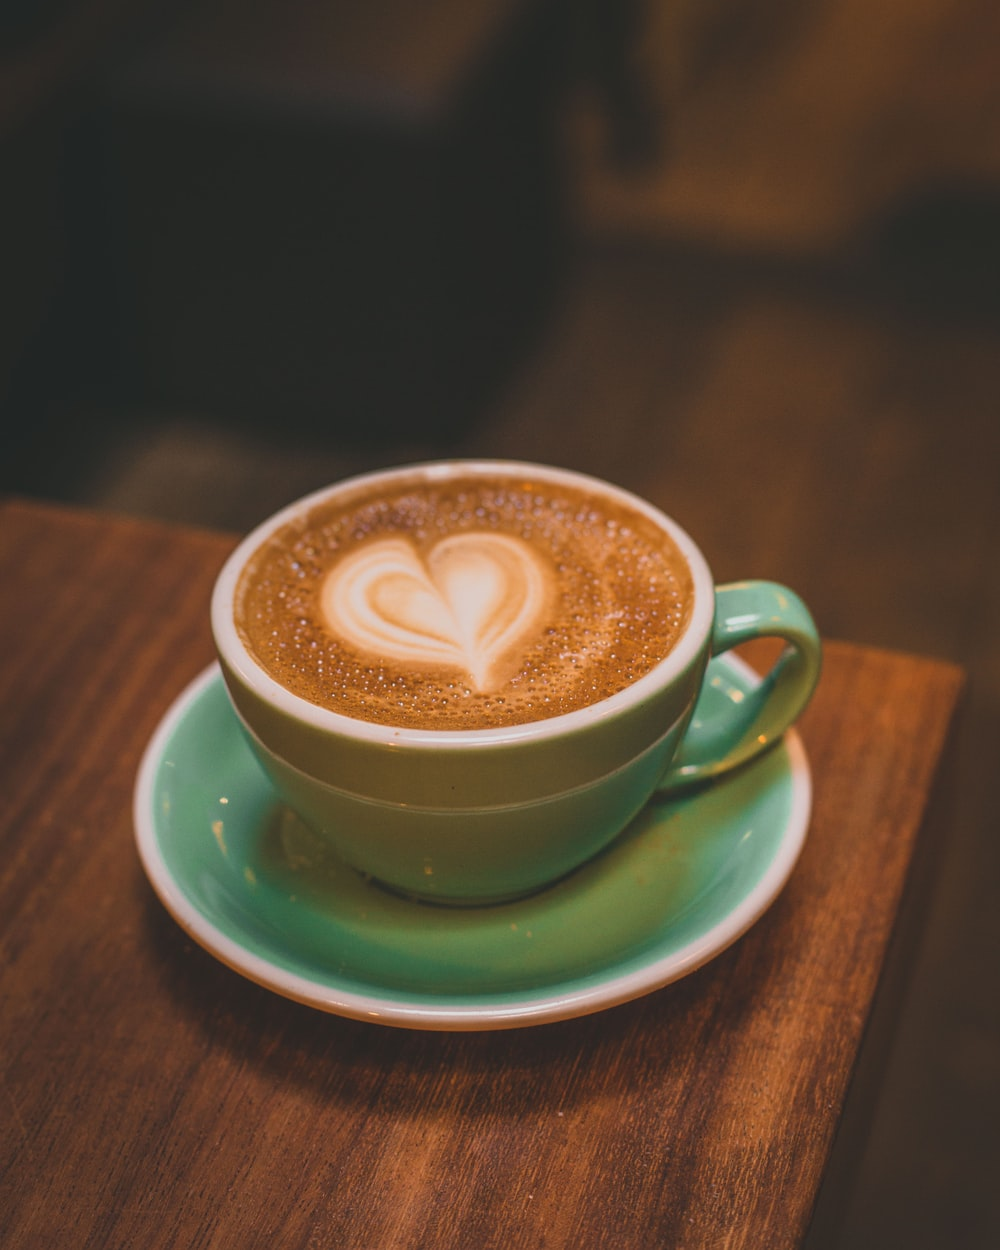 Cup Pictures Hd Download Free Images On Unsplash